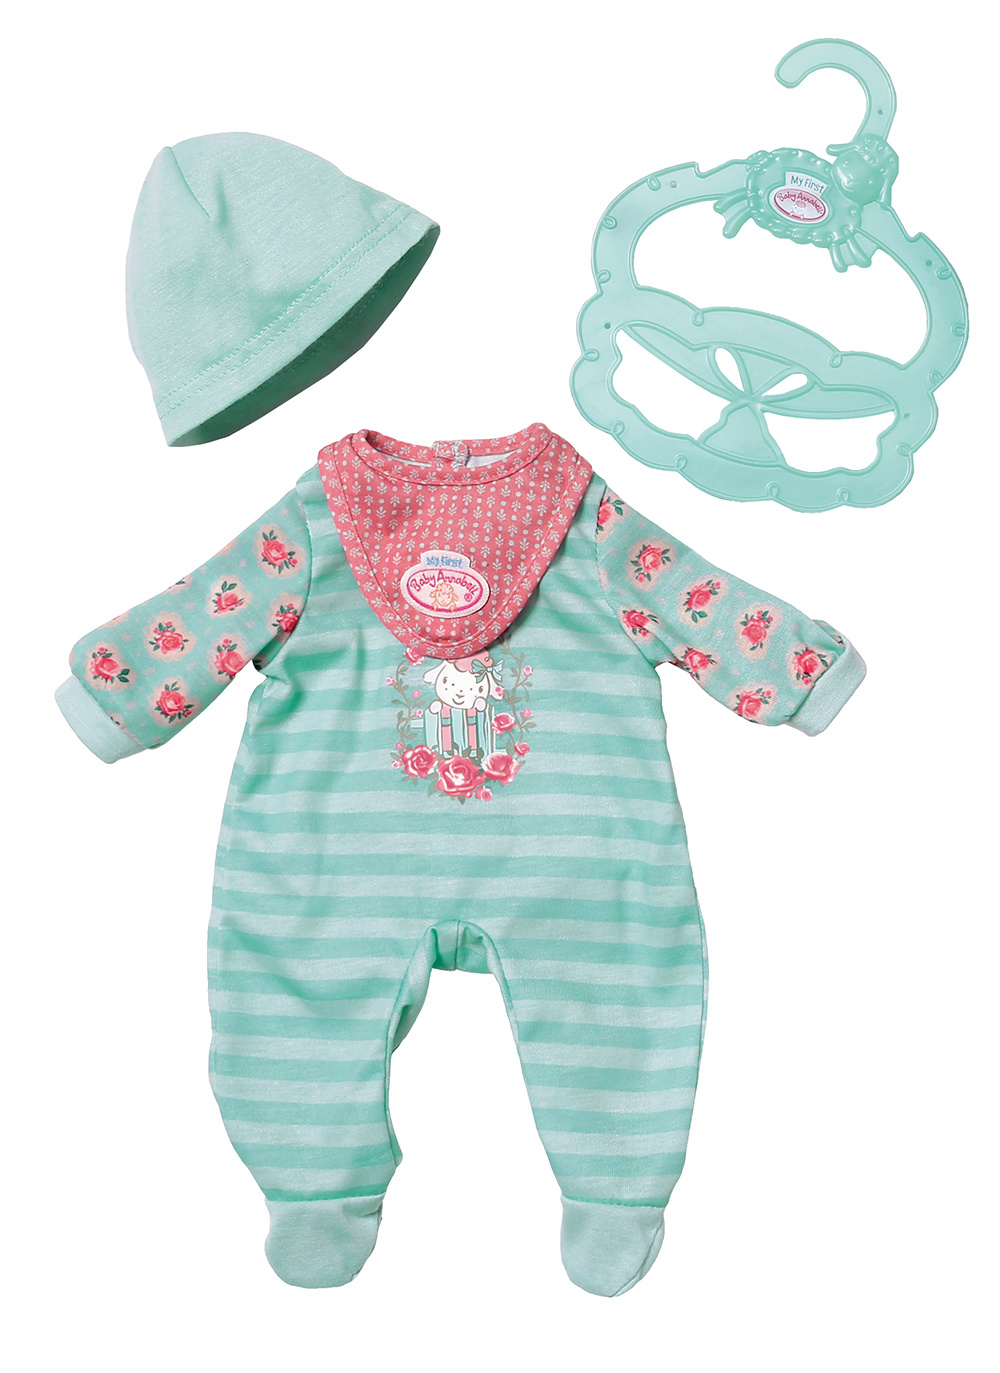 Tenue confortable  assorties-My First Baby Annabell